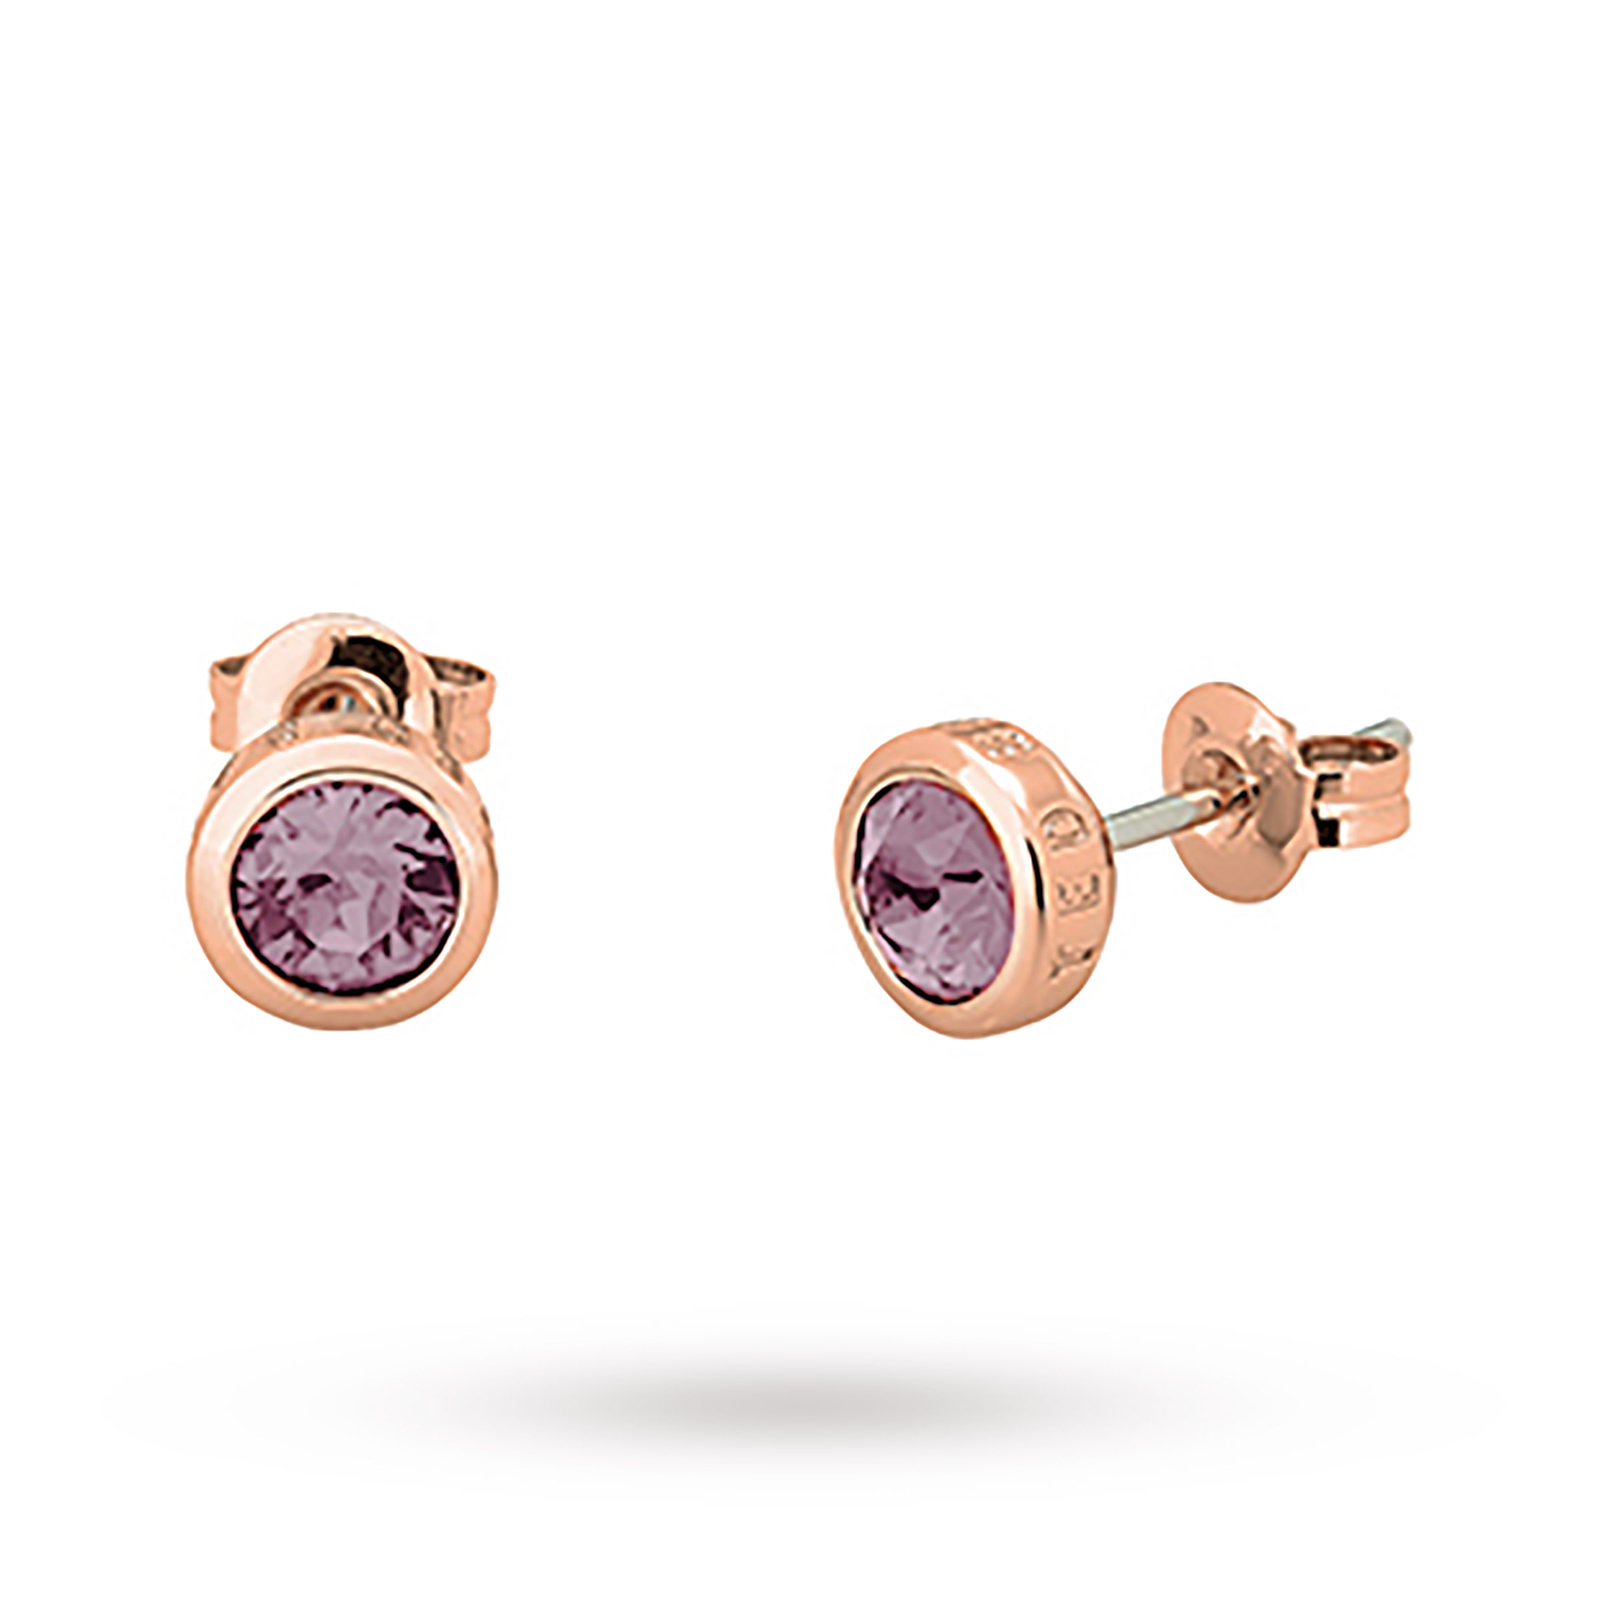 Exclusive Rose Gold Sina Purple Stud Earrings